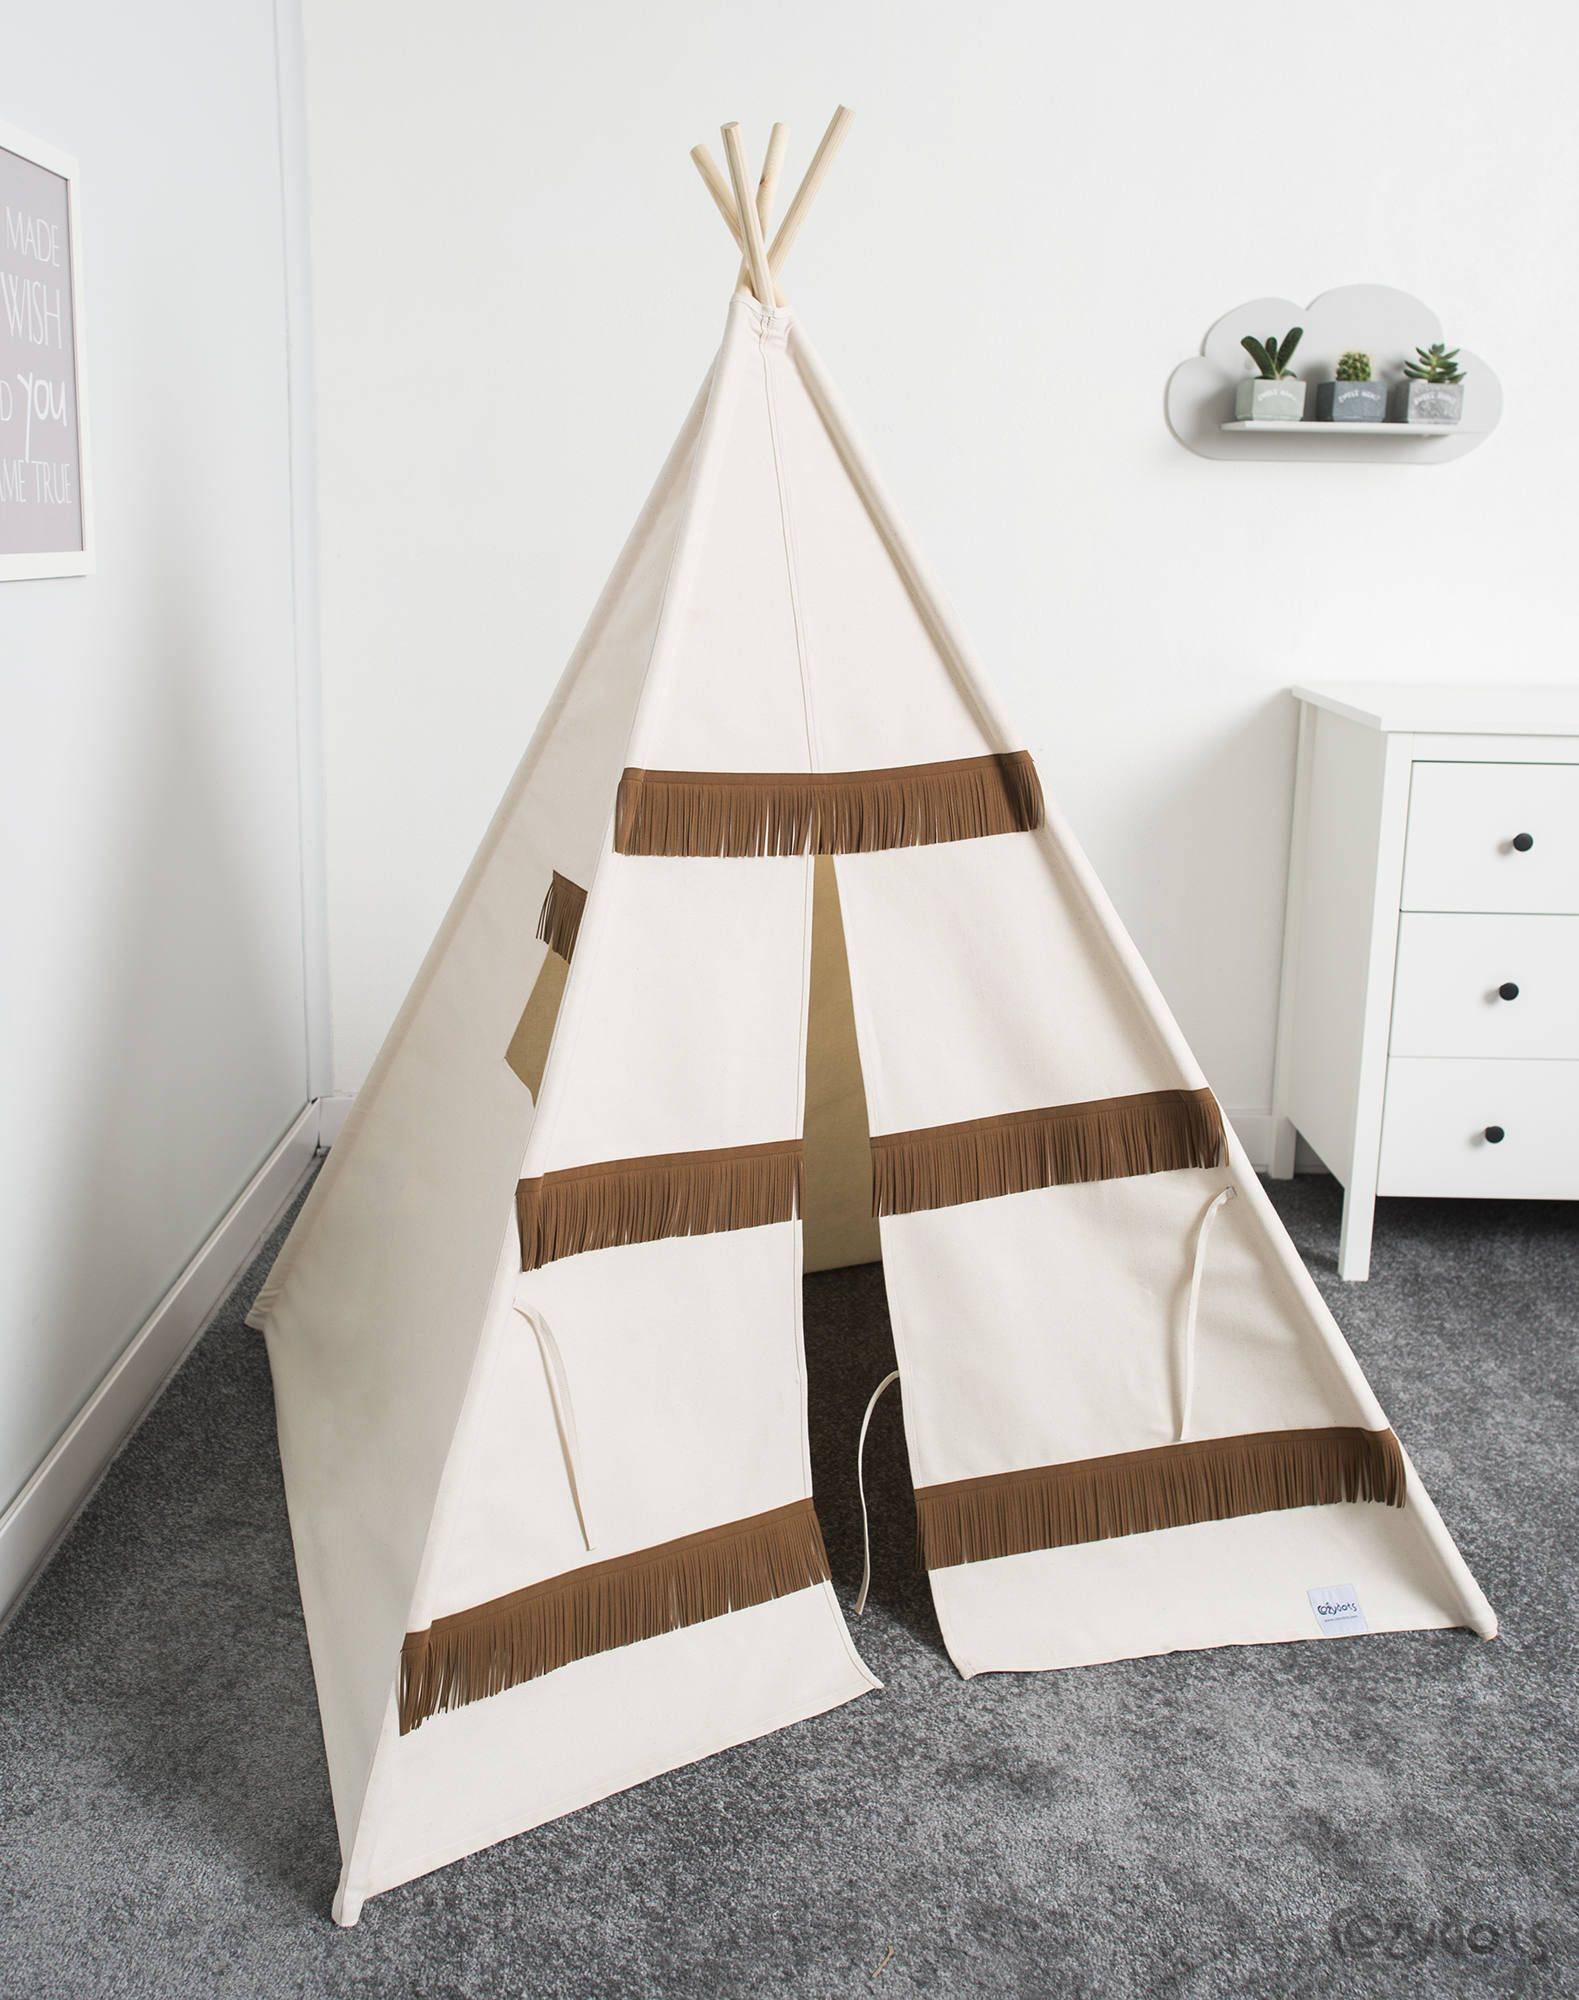 Indian teepee, kids play tent, tipi, tente indienne, tente de teepee ...